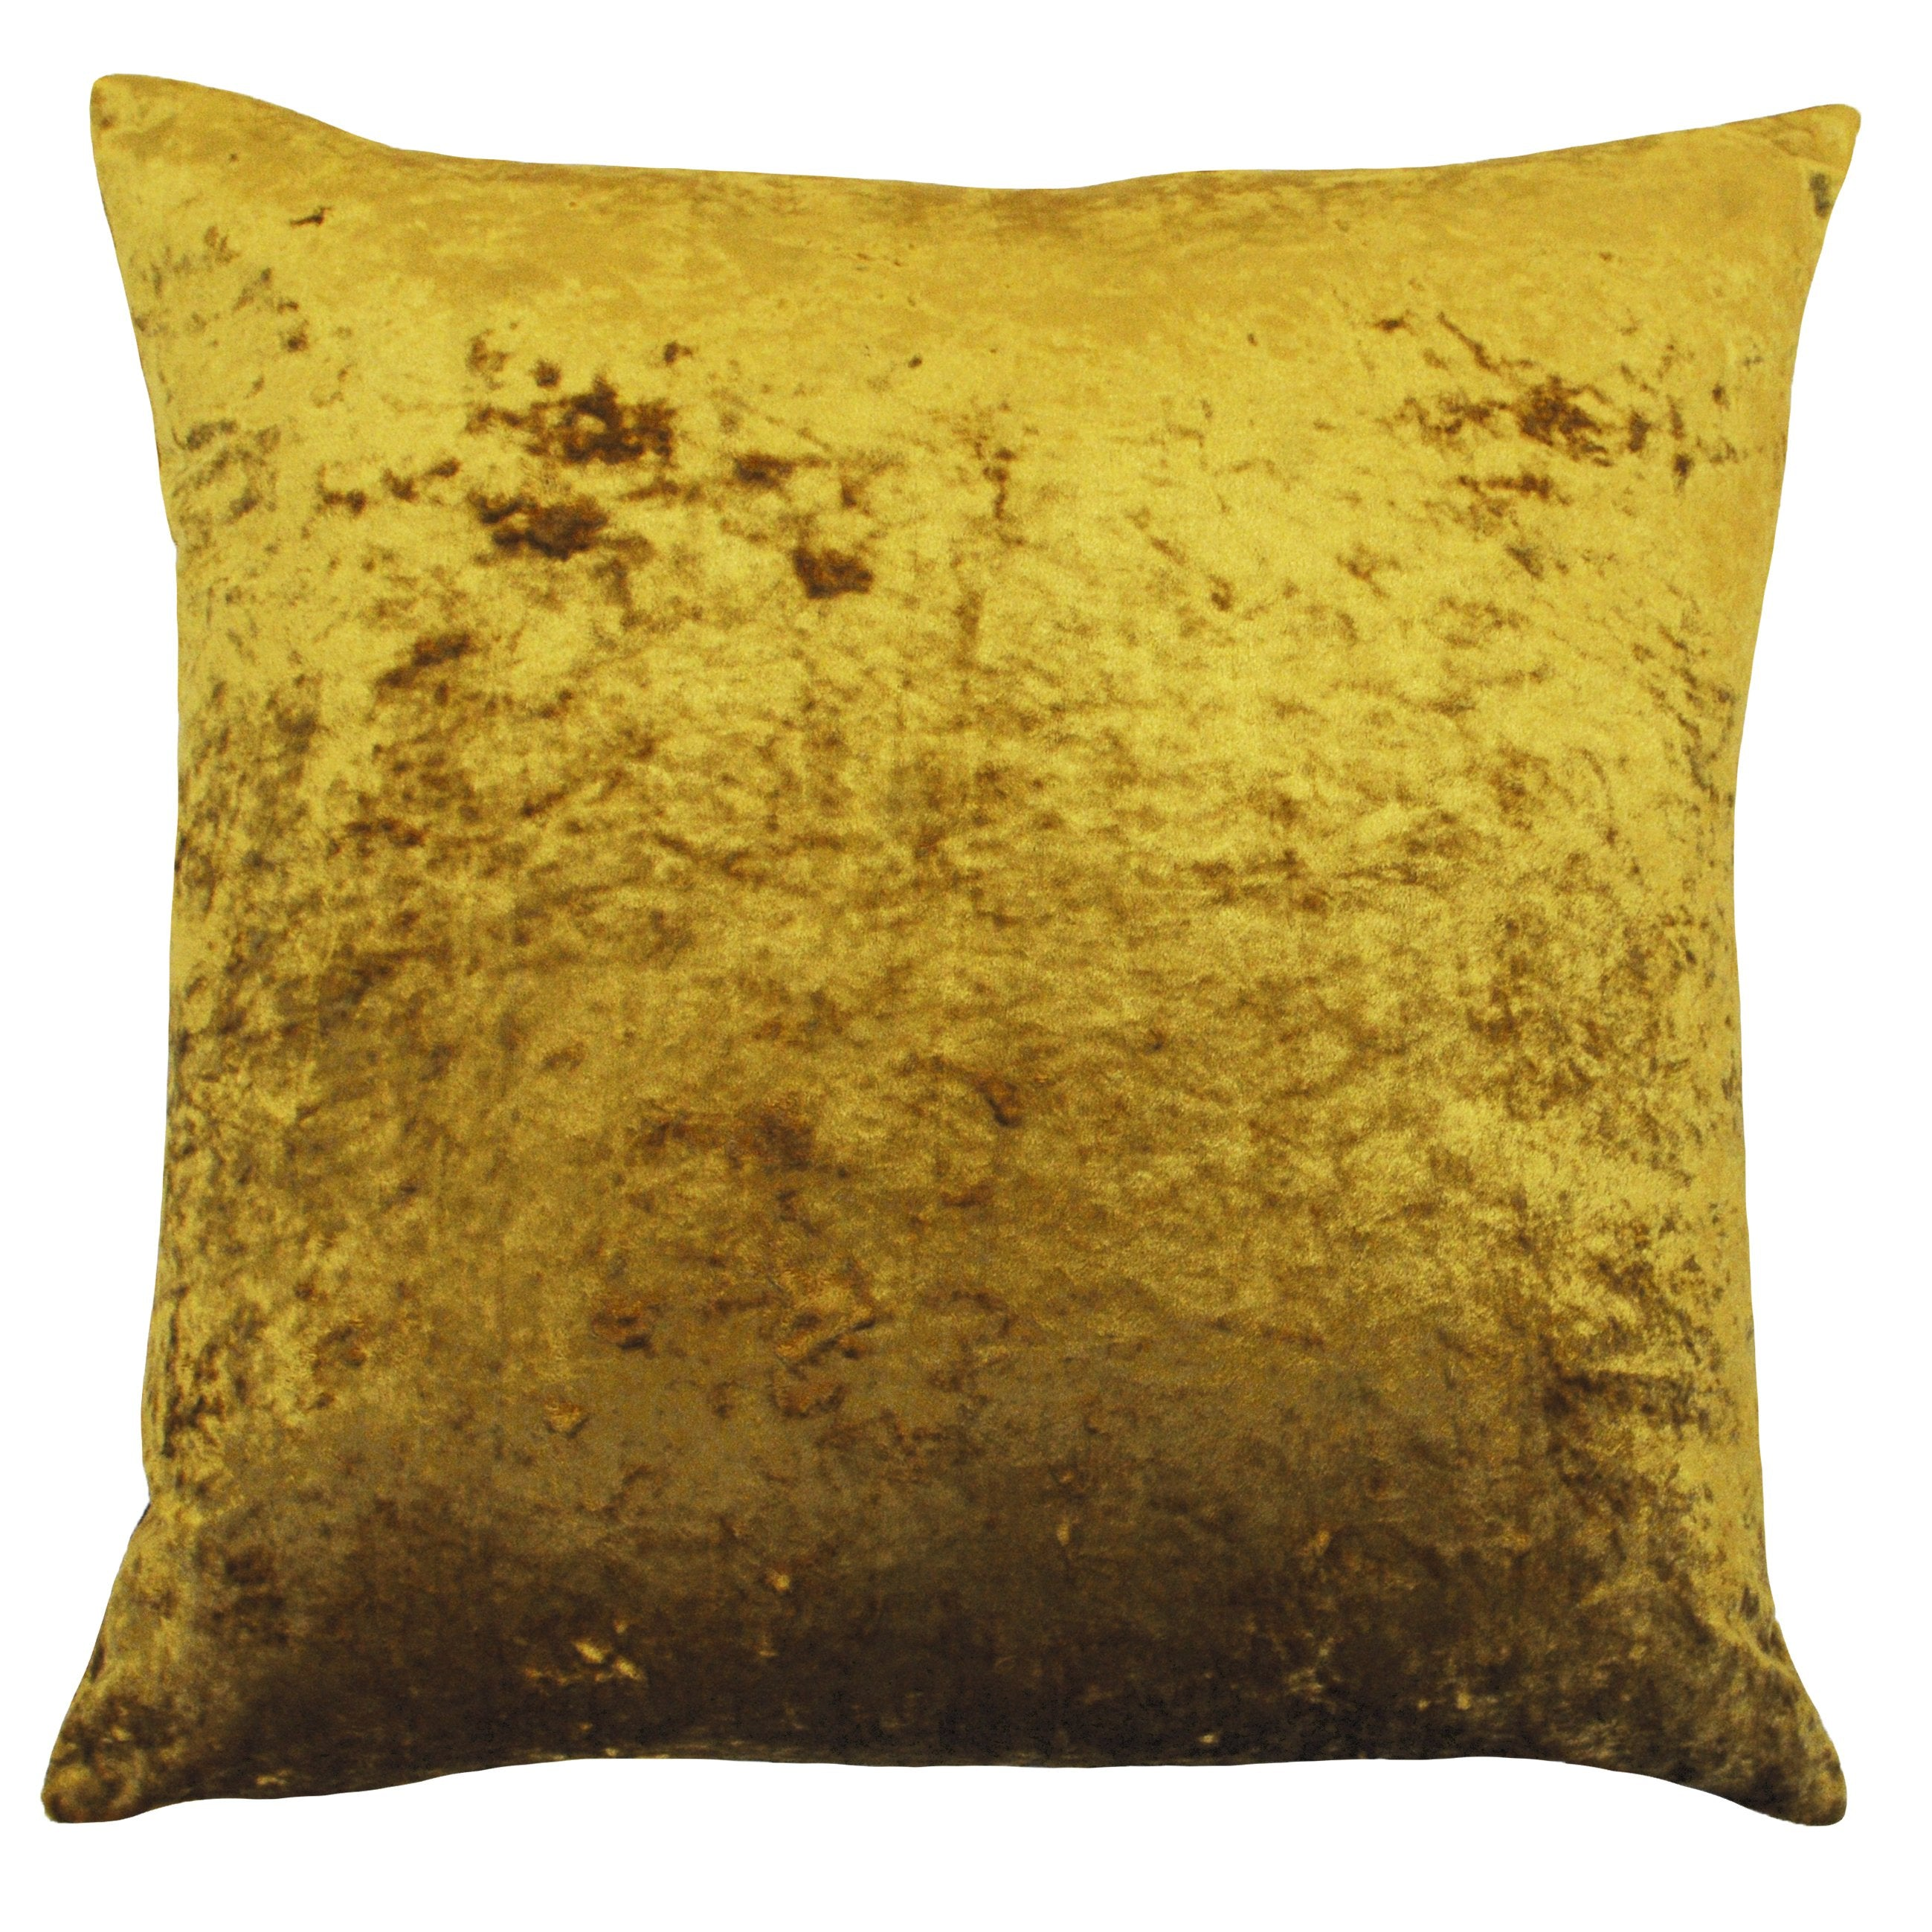 Riva Cushions And Throws Verona C/Cover Ochre Picture